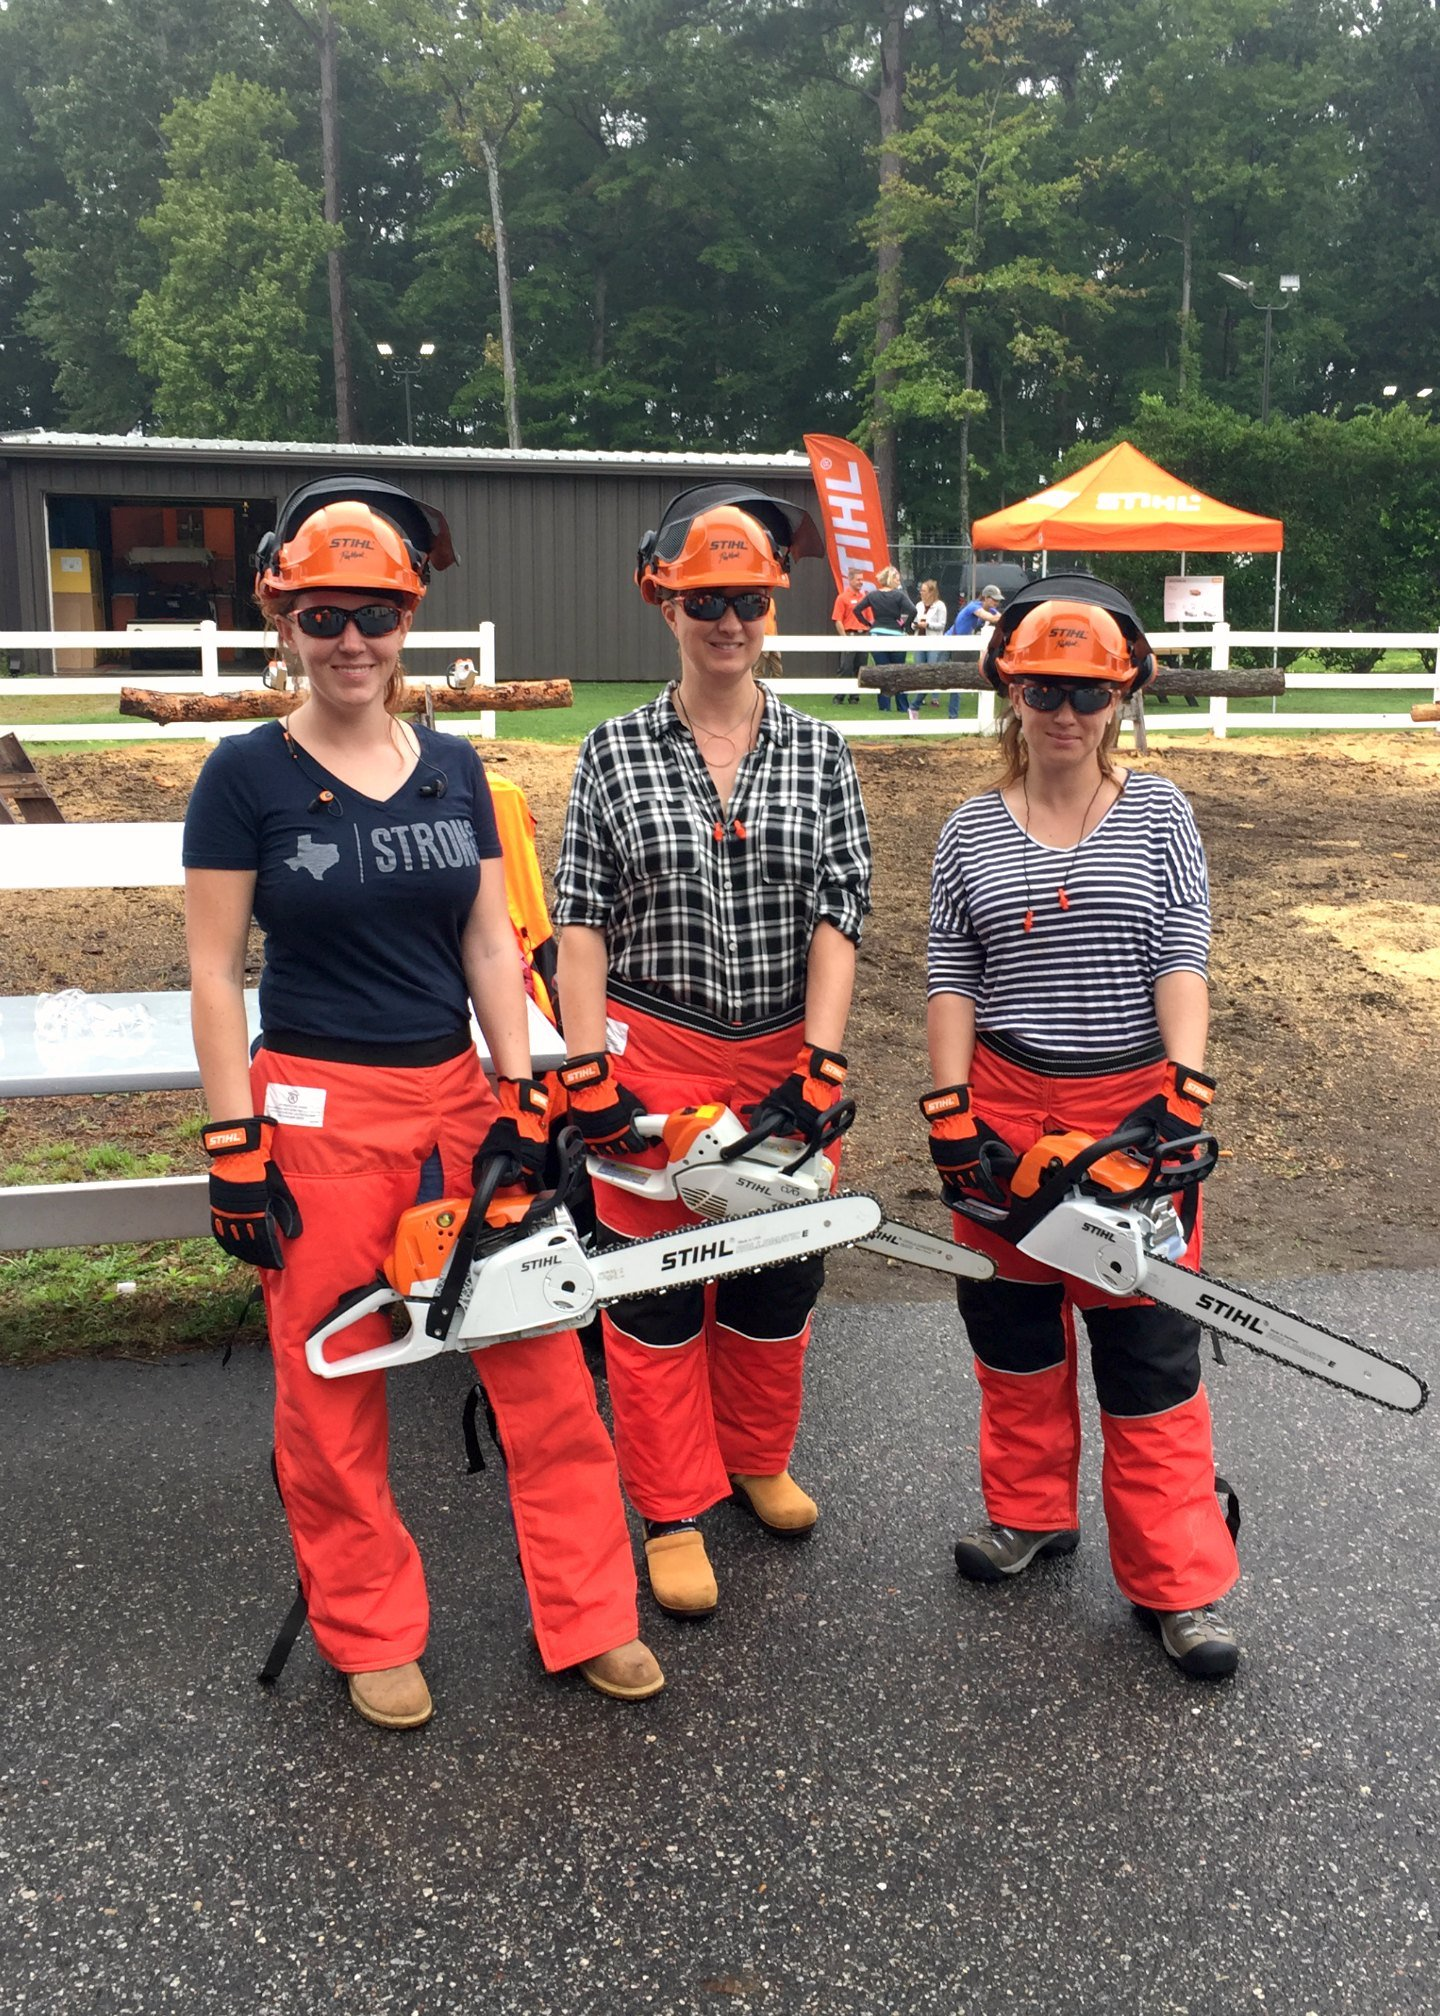 April Wilkerson, Brittany Bailey, and Sarah Fogle at STIHL